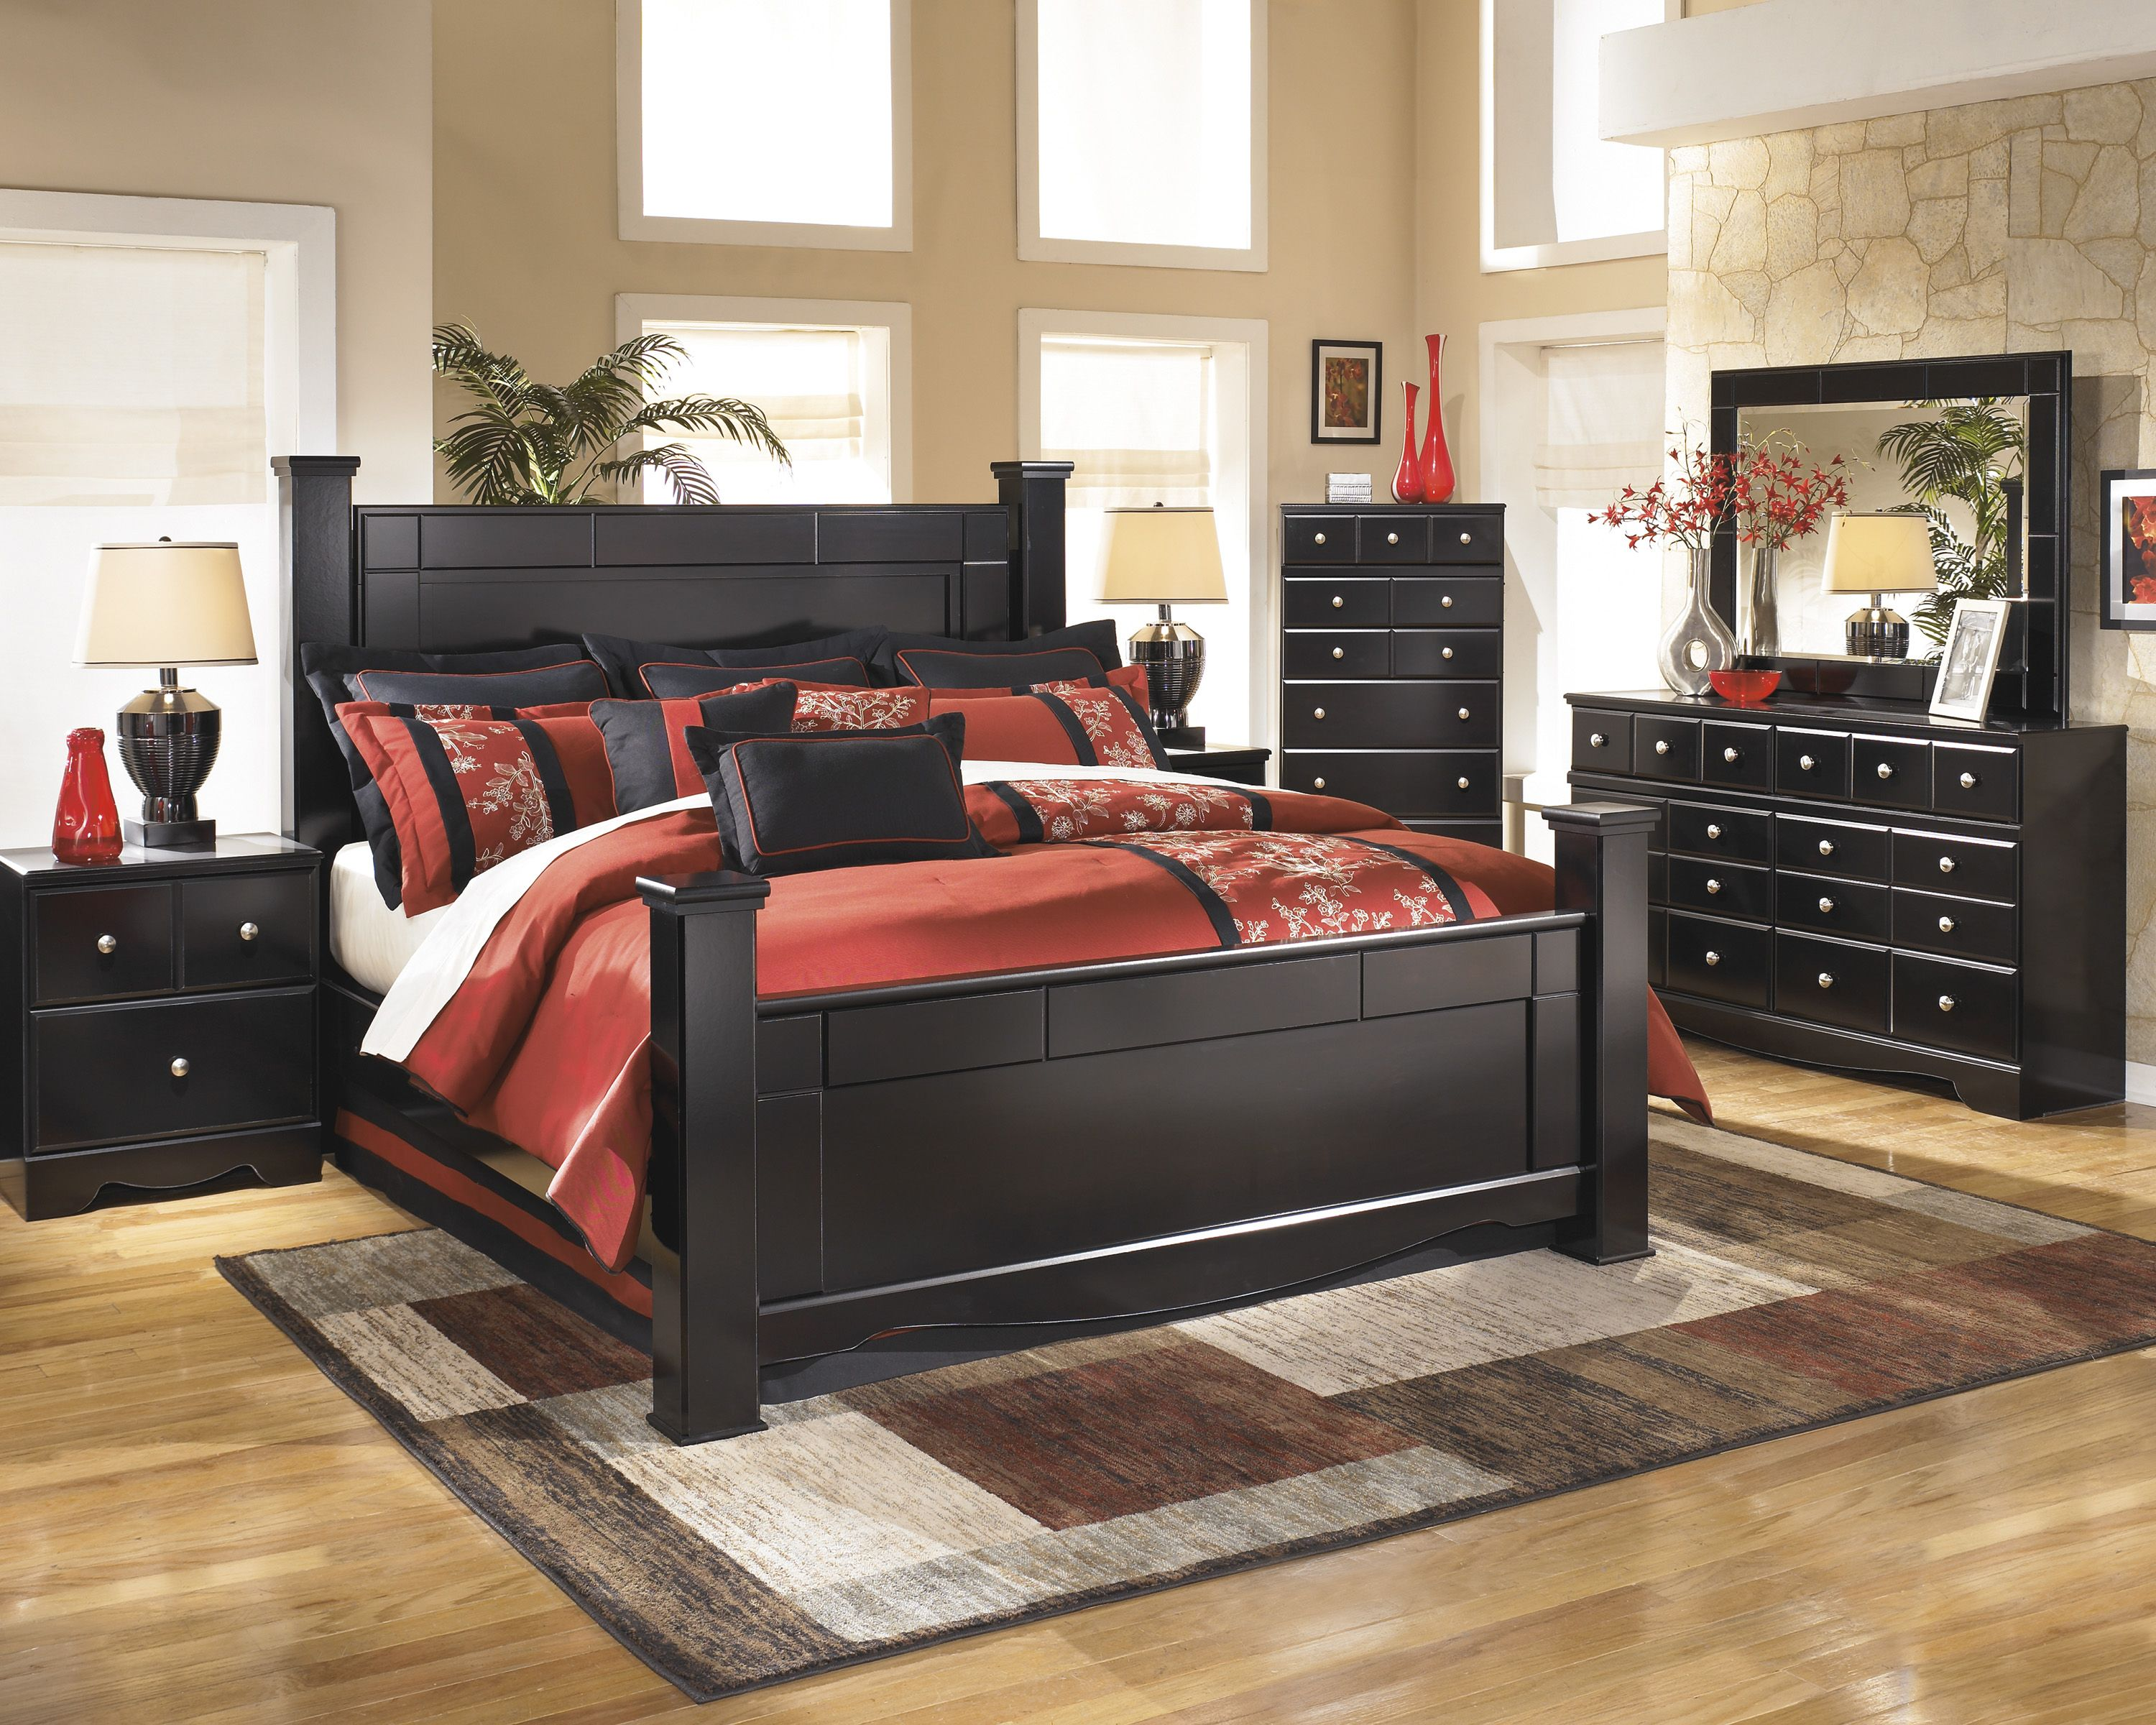 durban africa headboards gauteng pretoria sale fusion bedrooms for johannesburg products ayathebook in com stores south couch suite modern cheap furniture affordable beds bedroom online factory